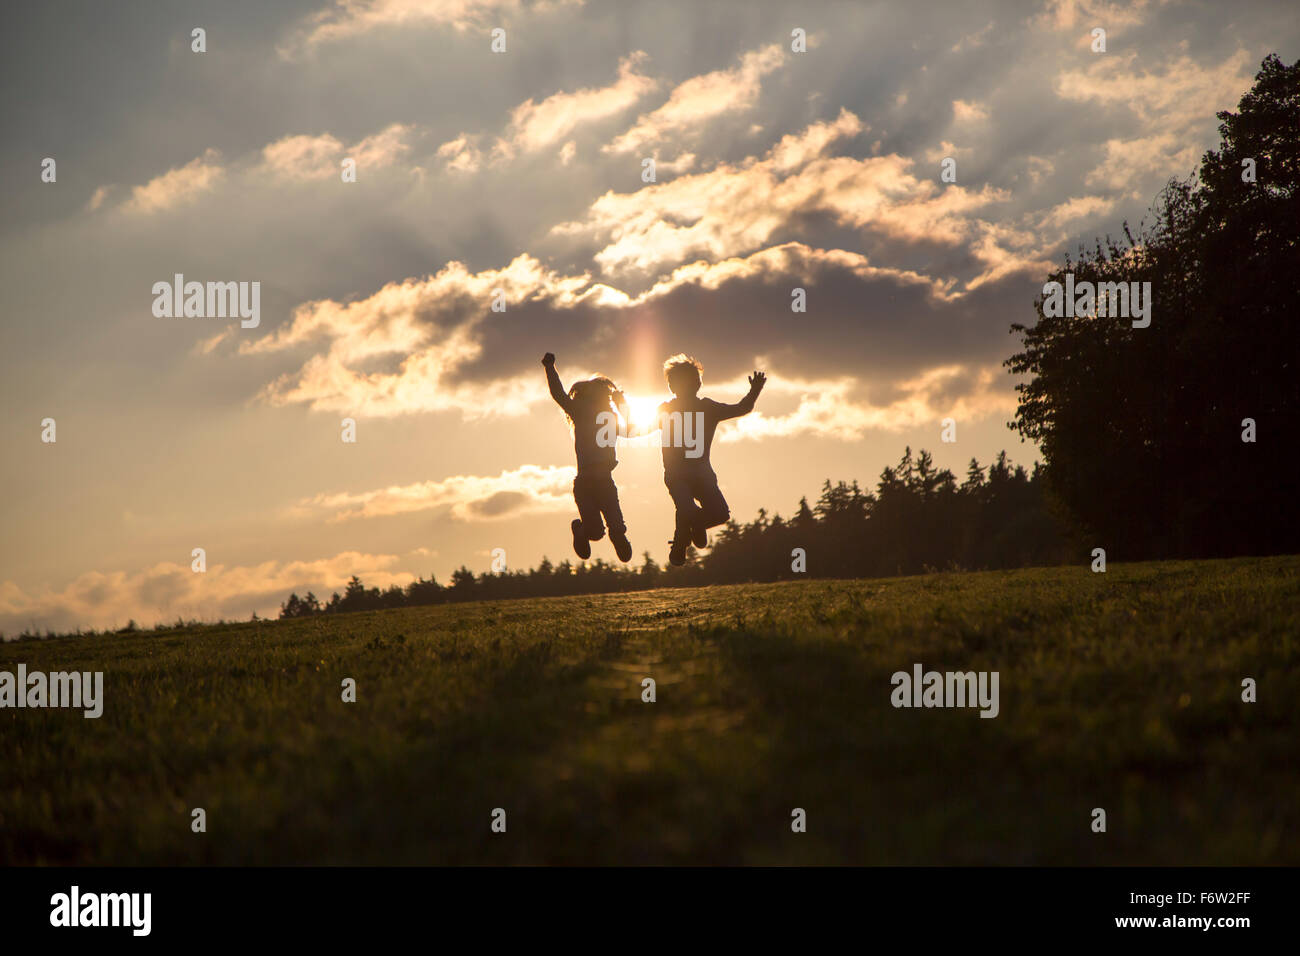 Silhouettes of two children jumping side by side on a meadow at backlight - Stock Image